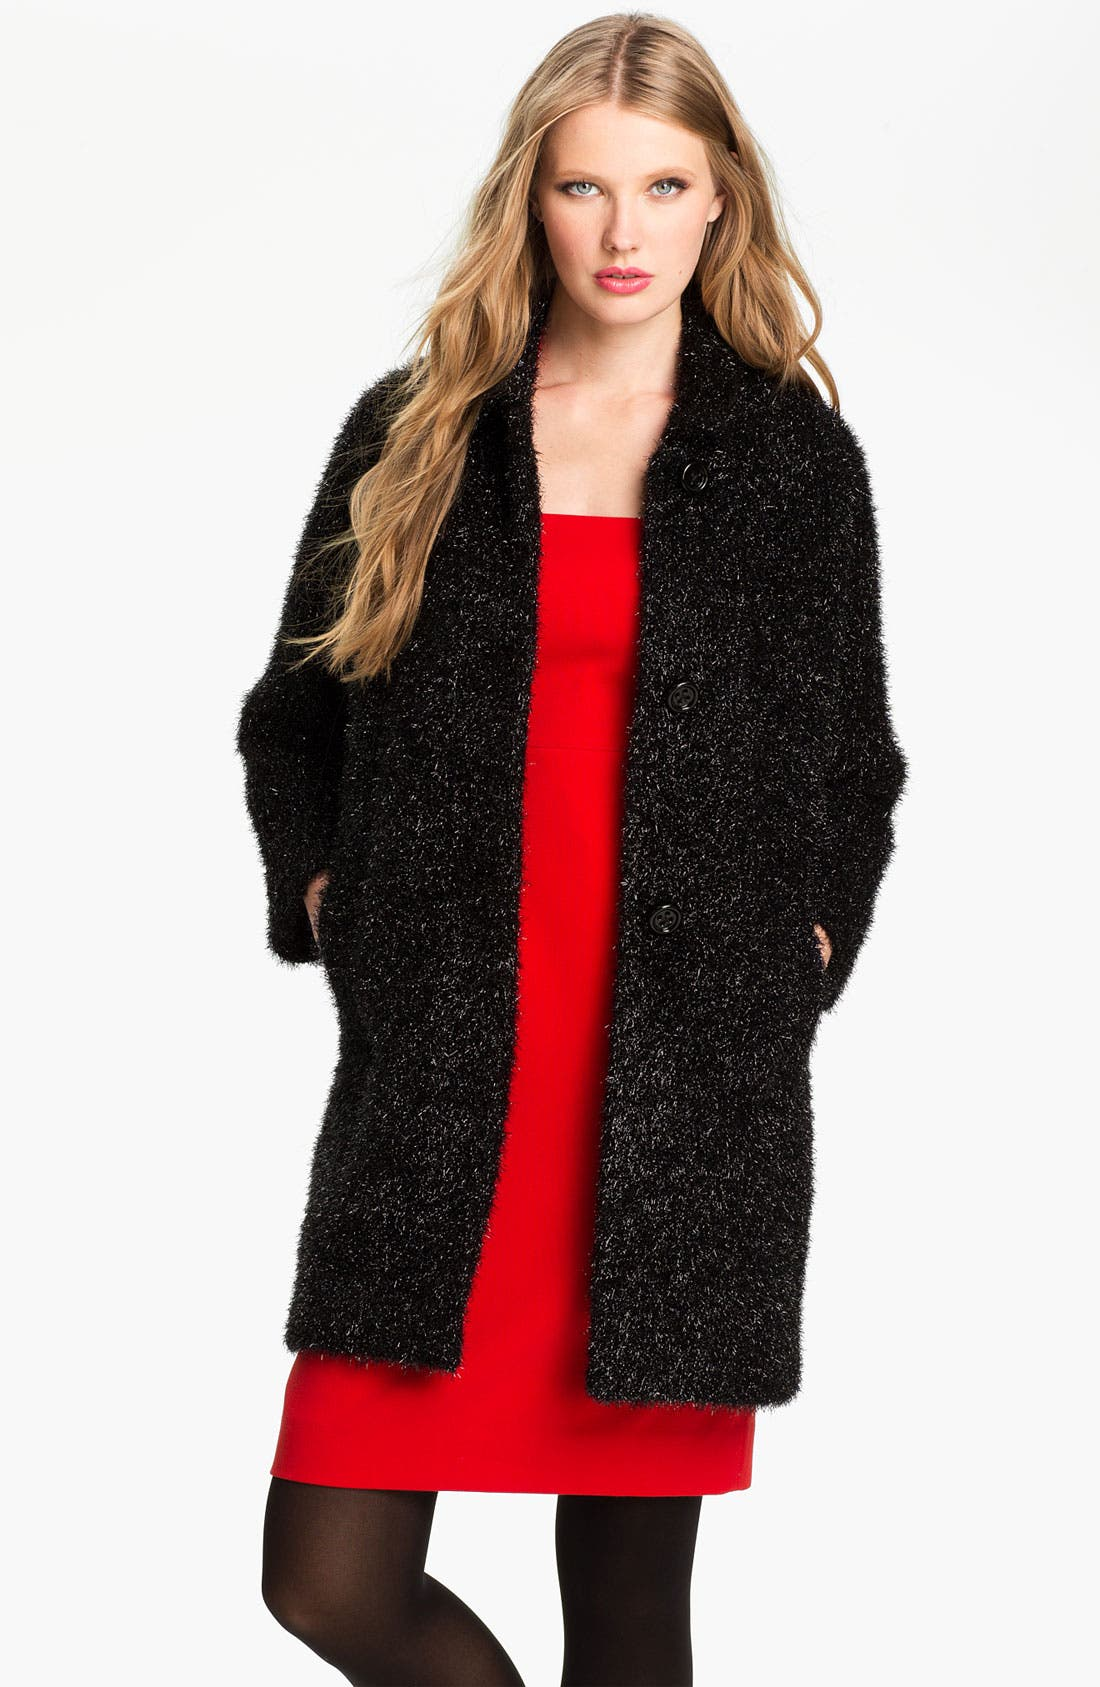 Alternate Image 1 Selected - kate spade new york 'linda' coat